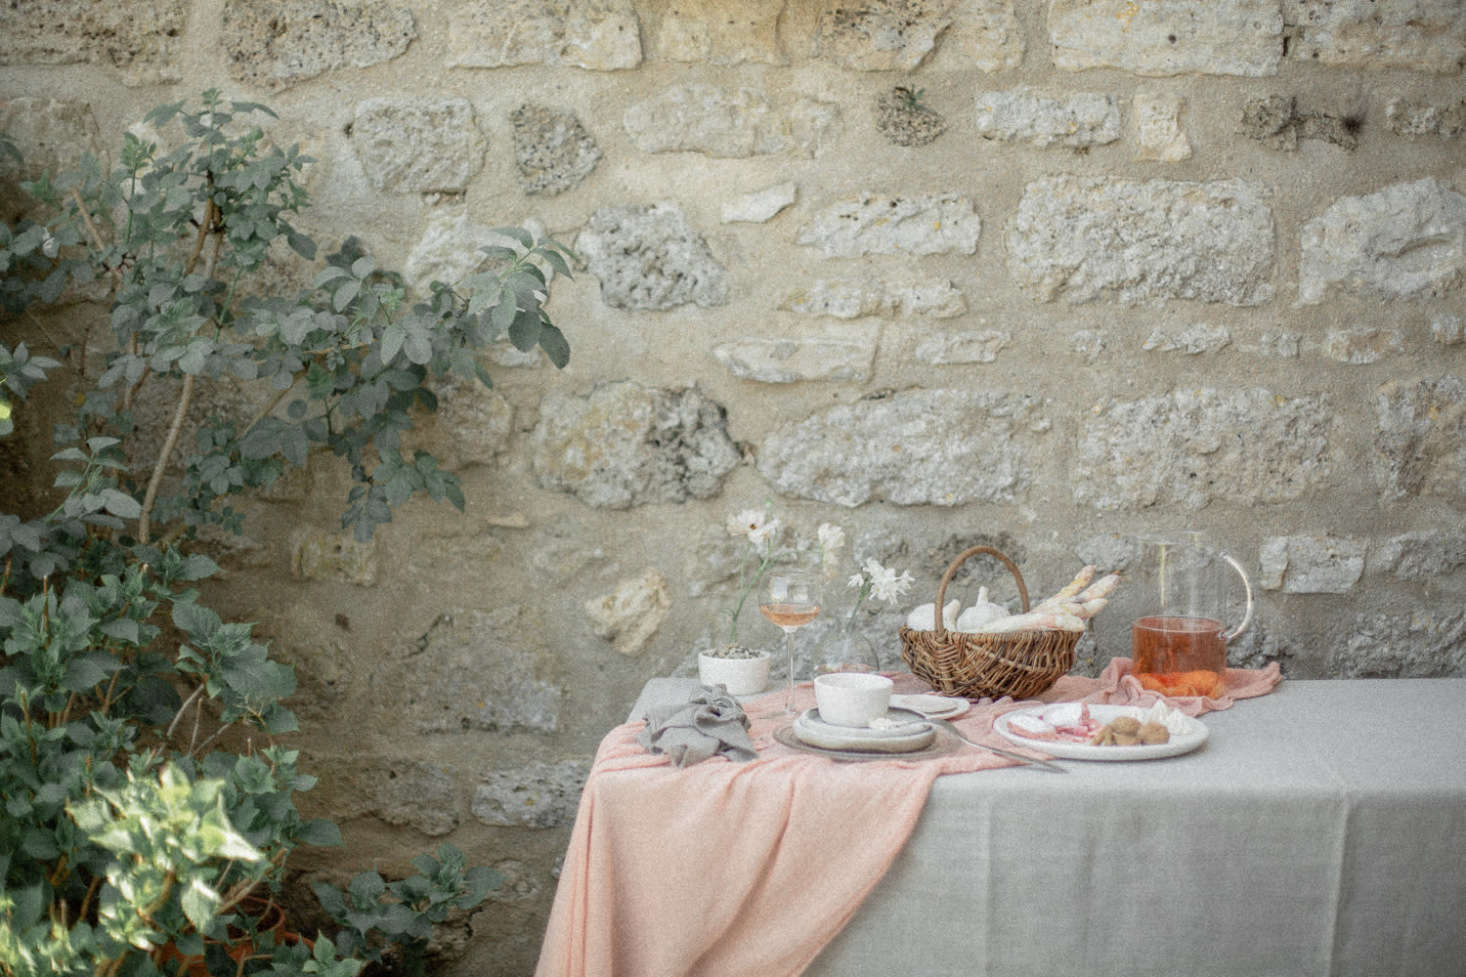 An undone-chic table at the French country house, set with summer drinks, freshly picked white asparagus, and a simple white floral arrangement.